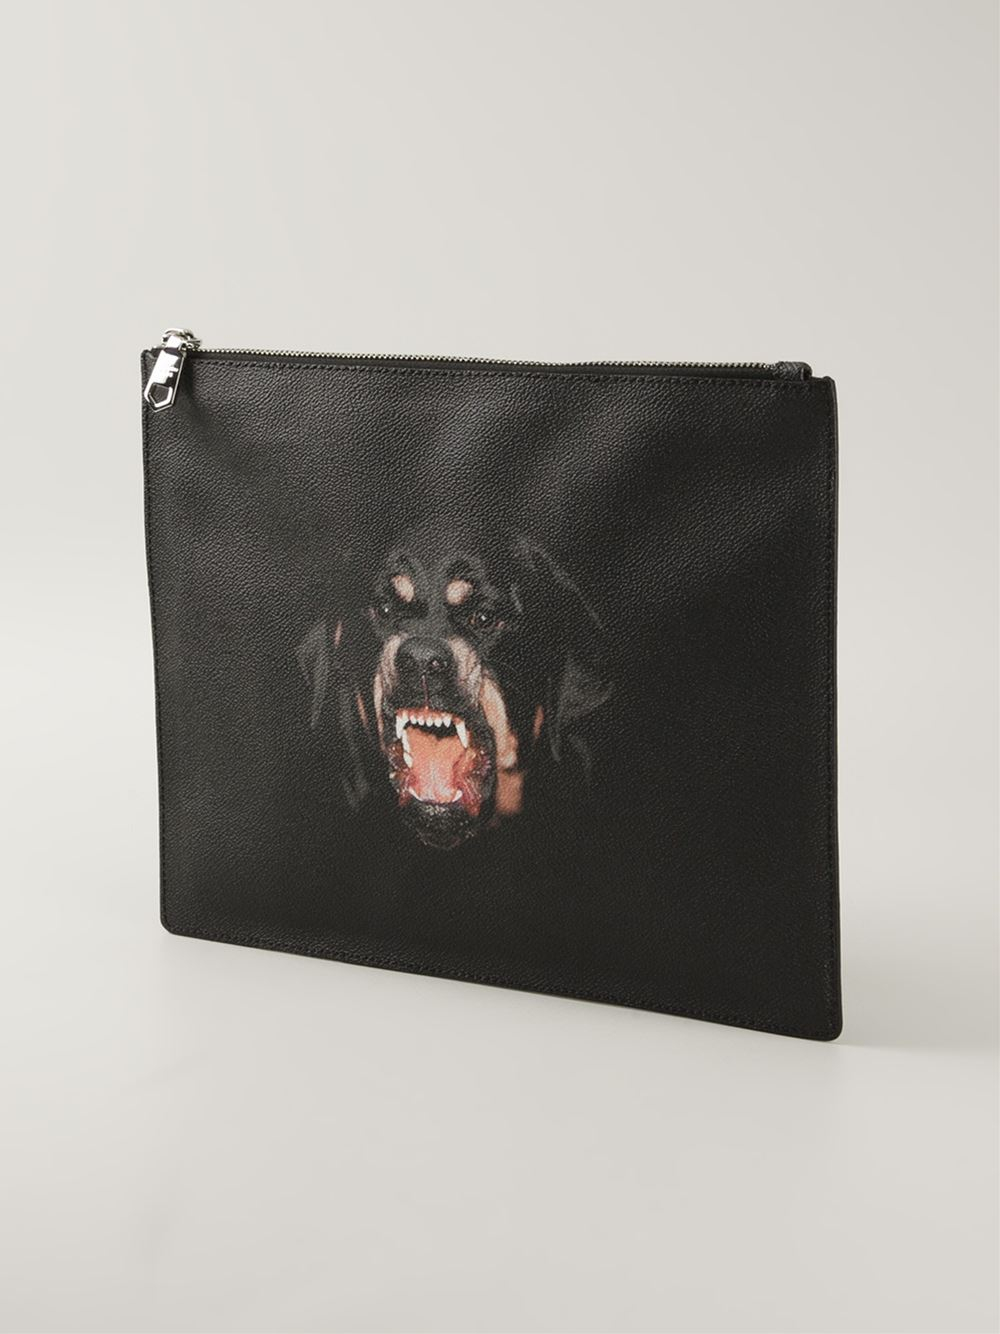 73291f321f9a Lyst - Givenchy Rottweiler Print Clutch in Black for Men